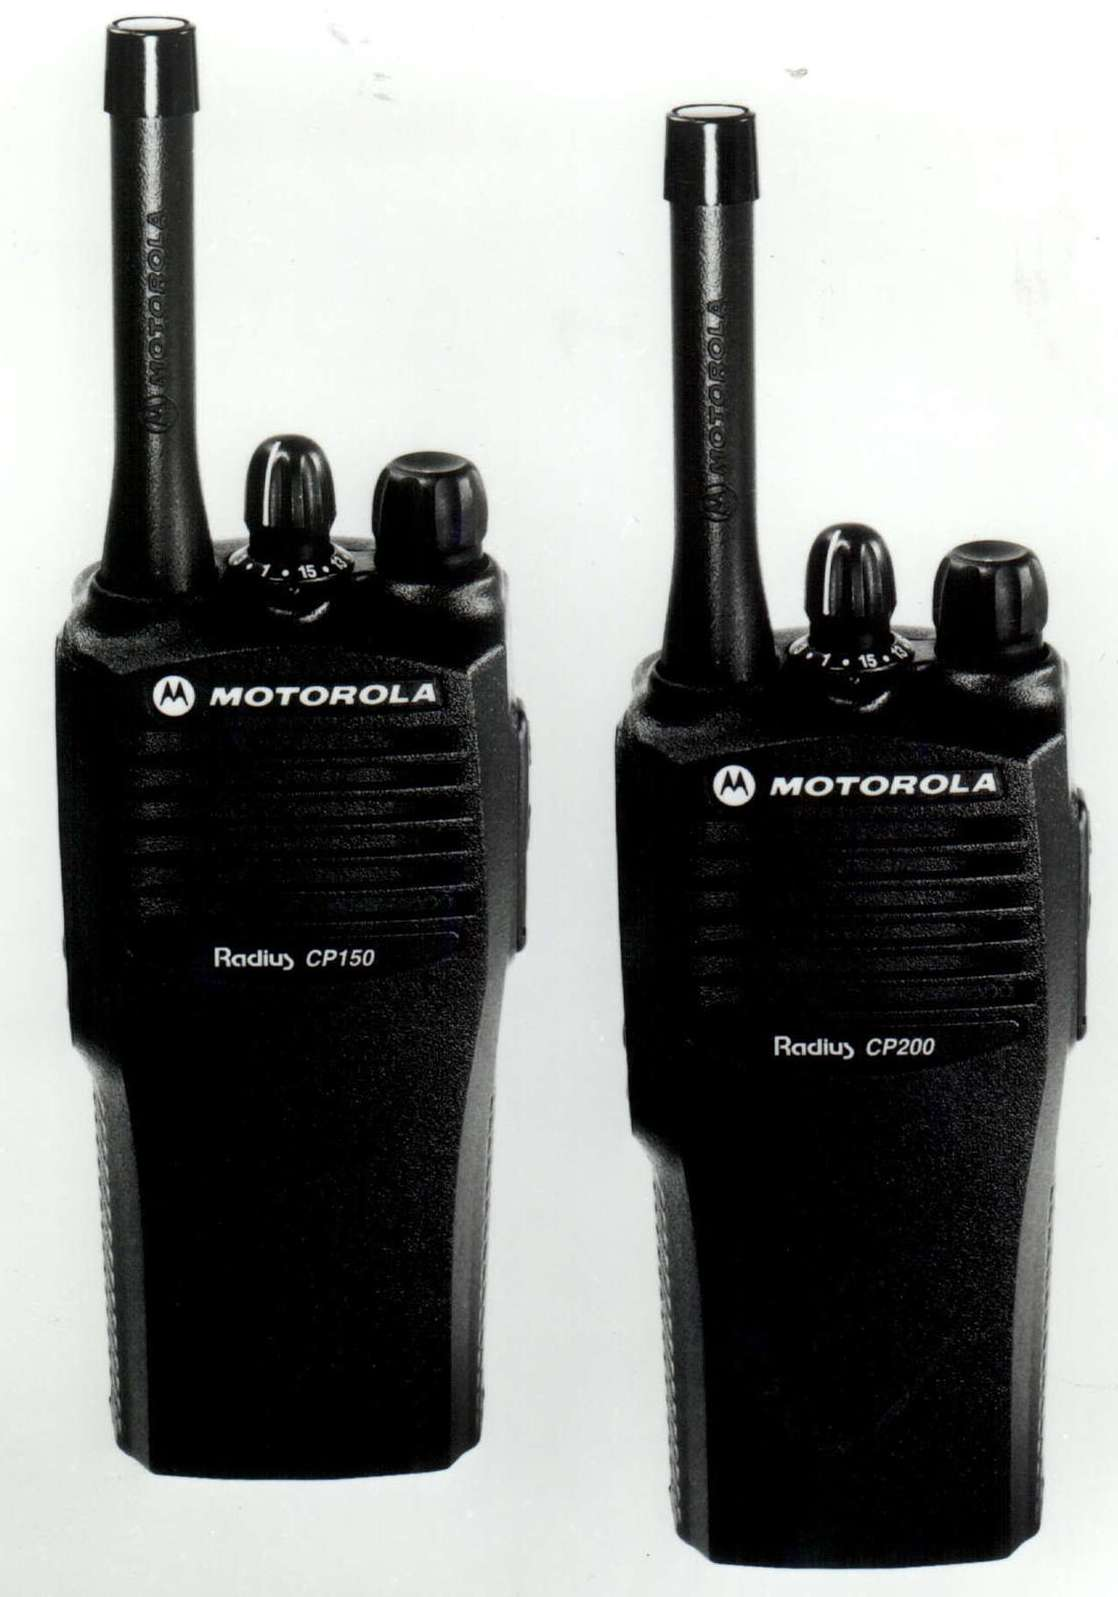 A two-way radio